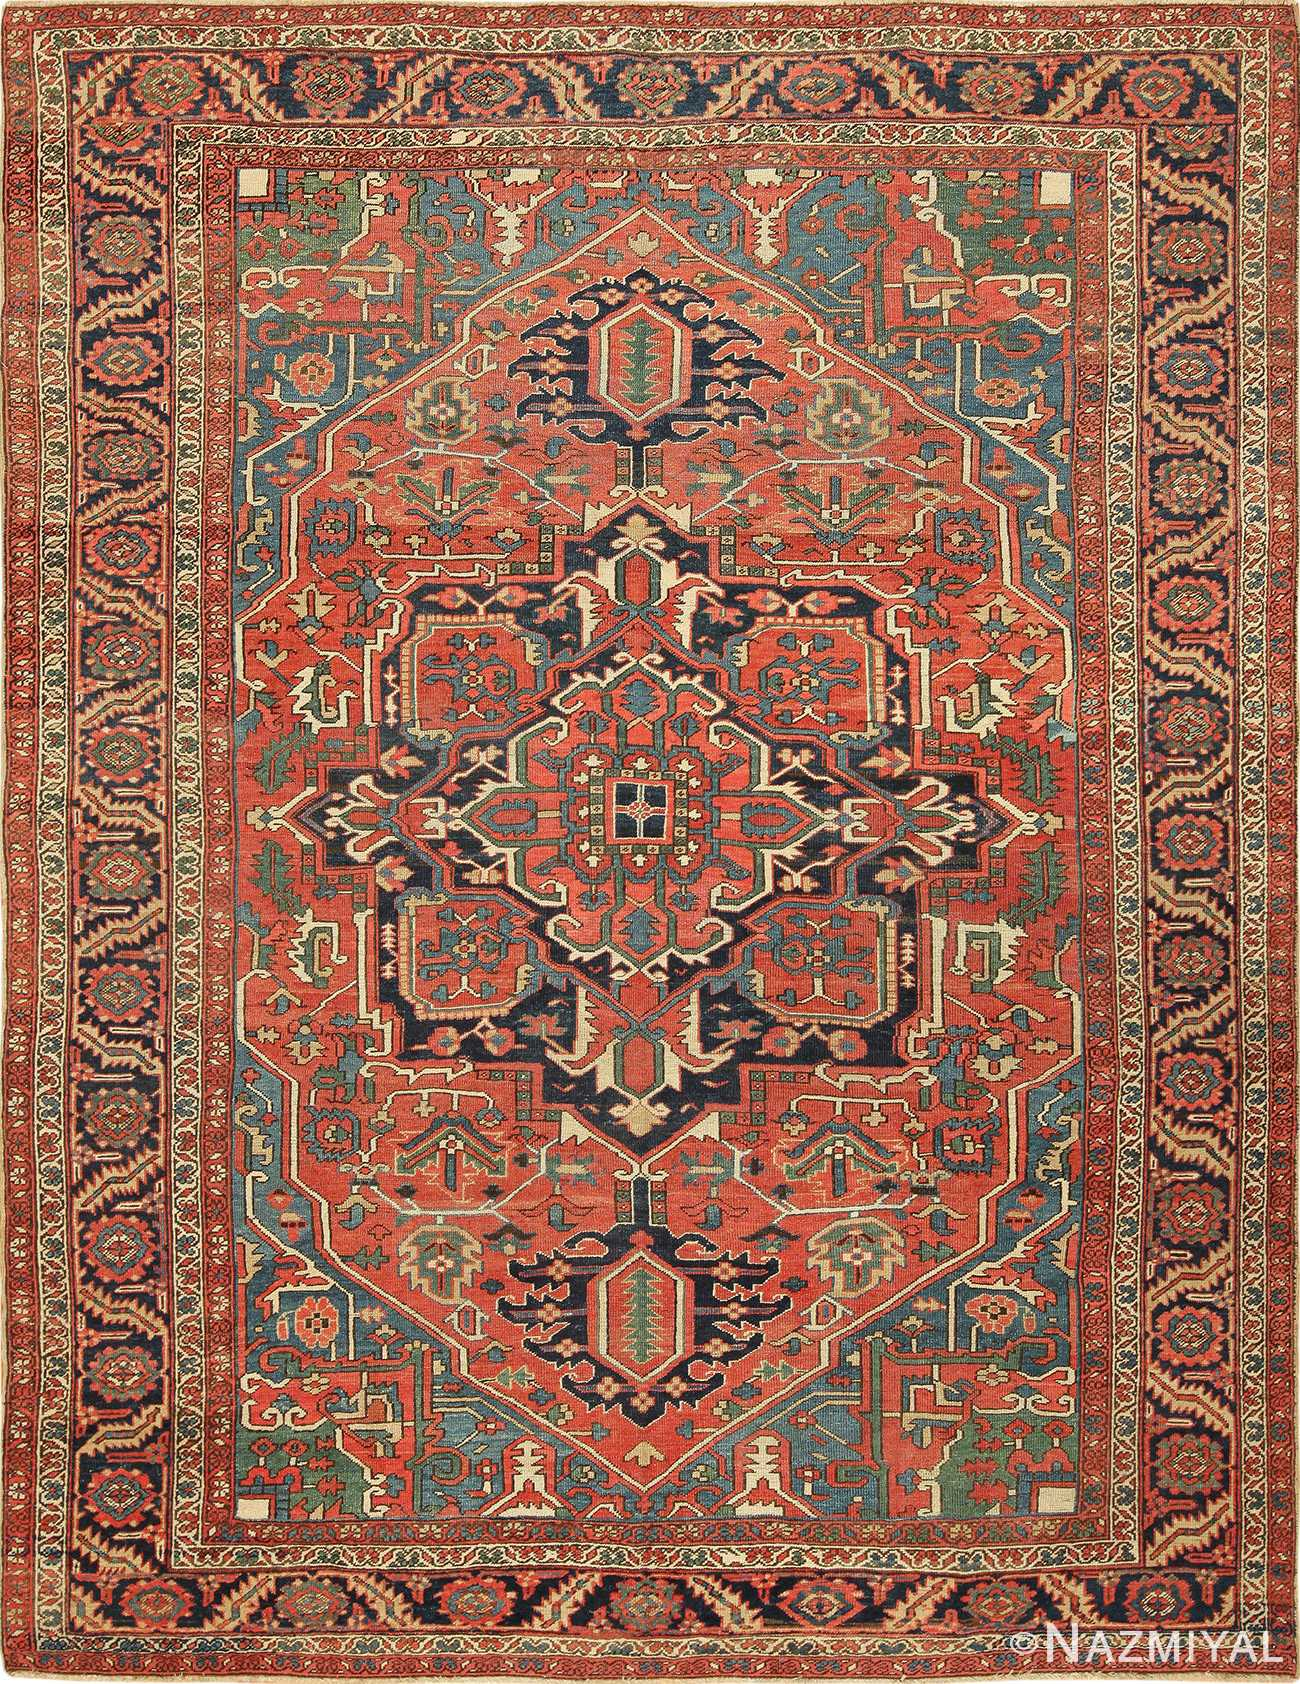 Antique Persian Room Size Heriz Rug 49479 by Nazmiyal